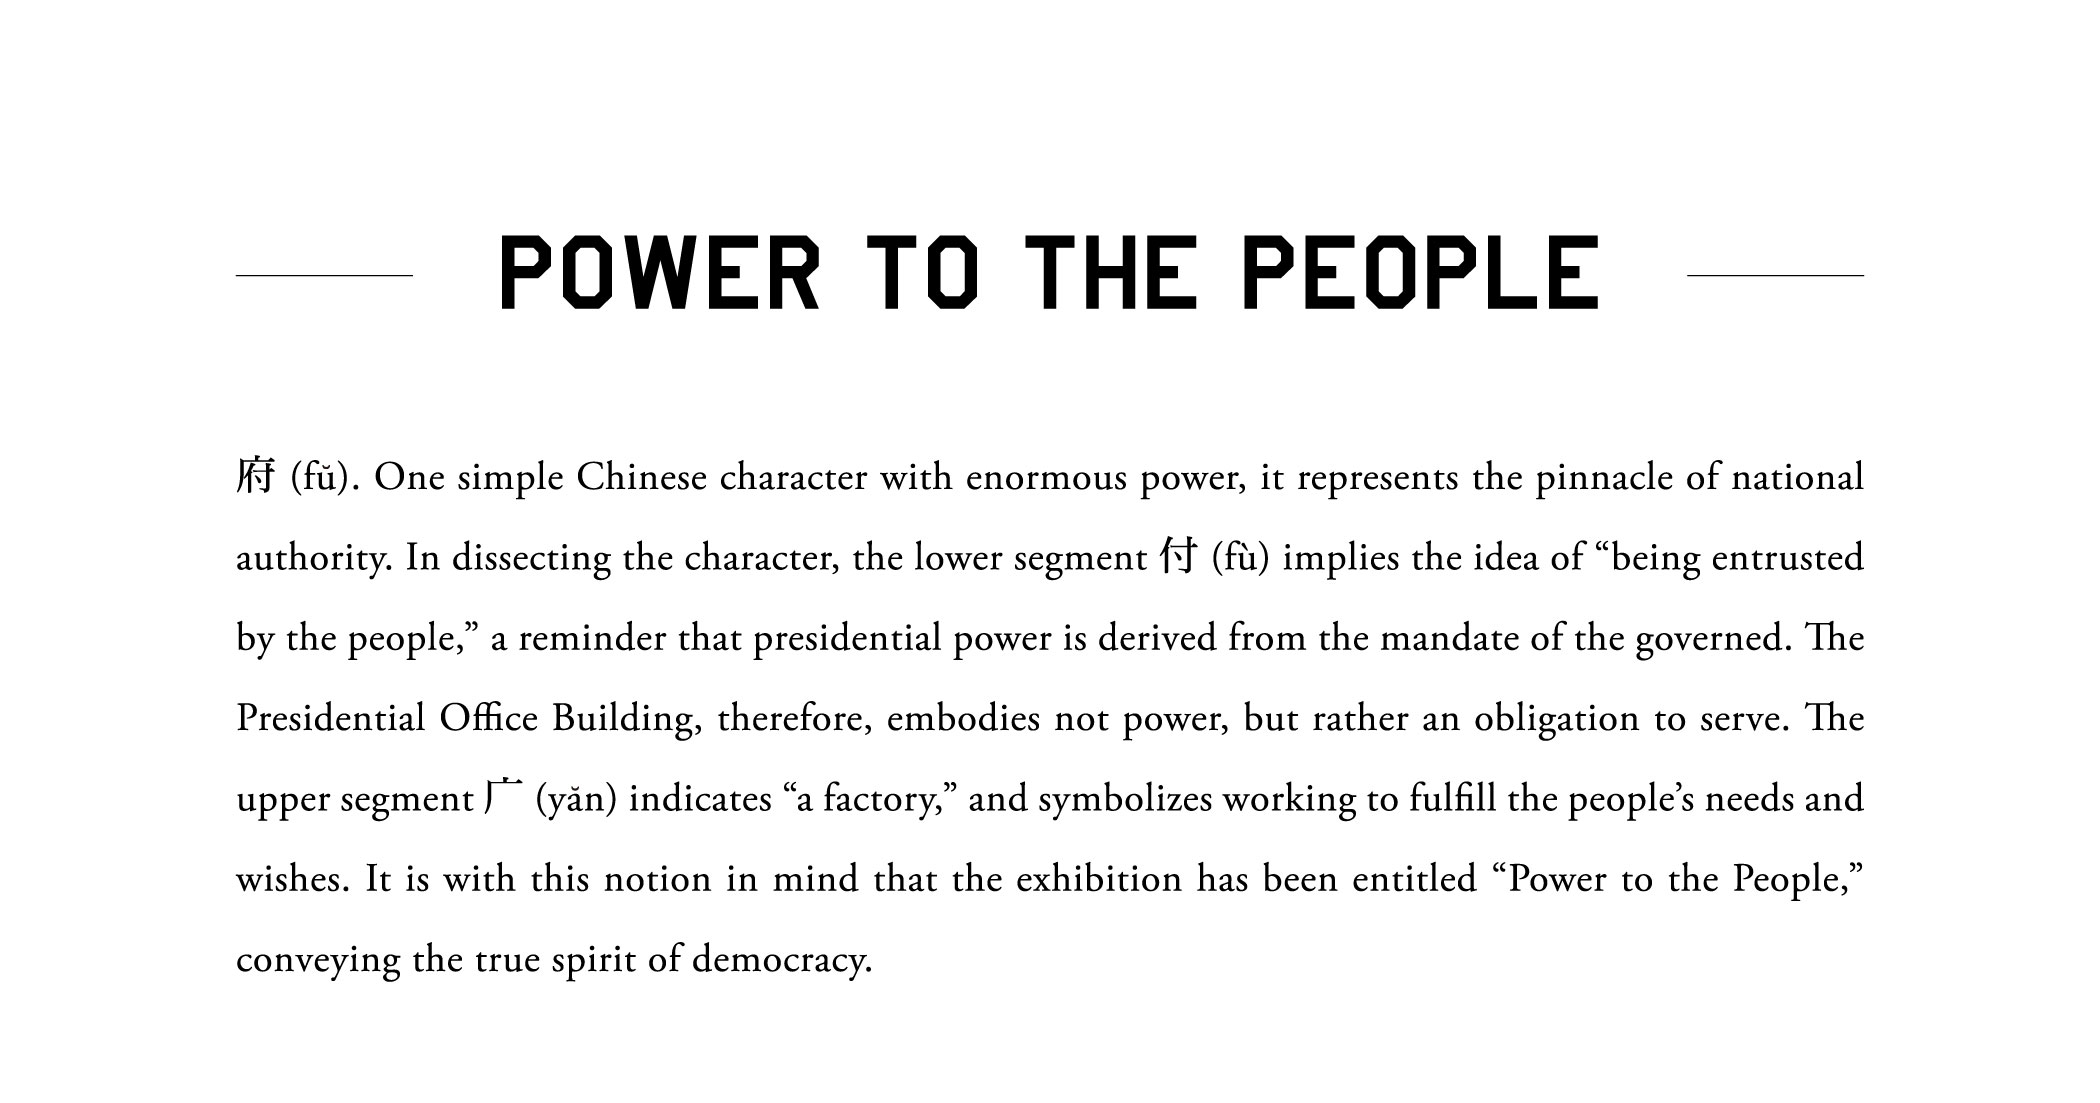 「府-Power To The People」 text description